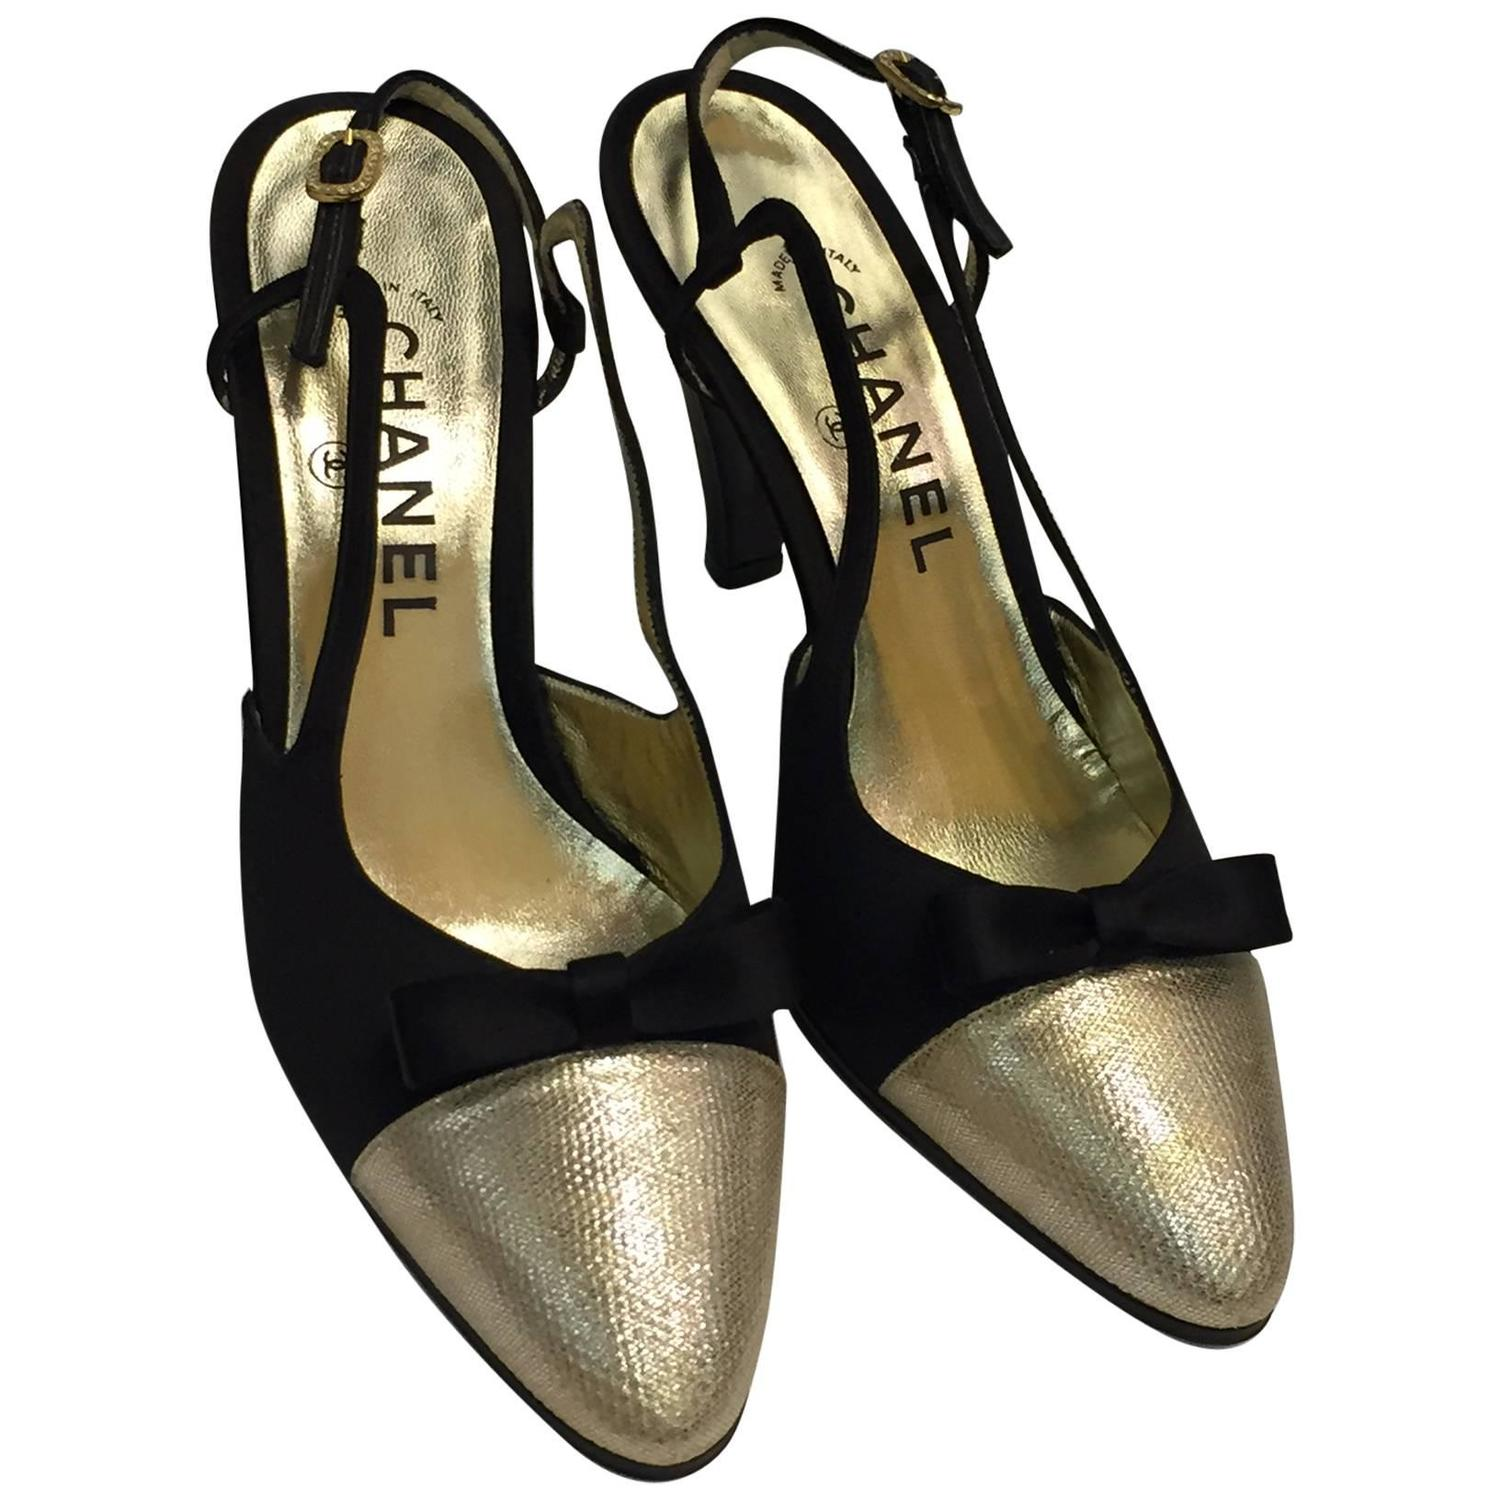 2d349dd5d1042 1980s Chanel Peau de Soi Gold Lamé Cap-Toe Slingback Pumps - Never Worn For  Sale at 1stdibs